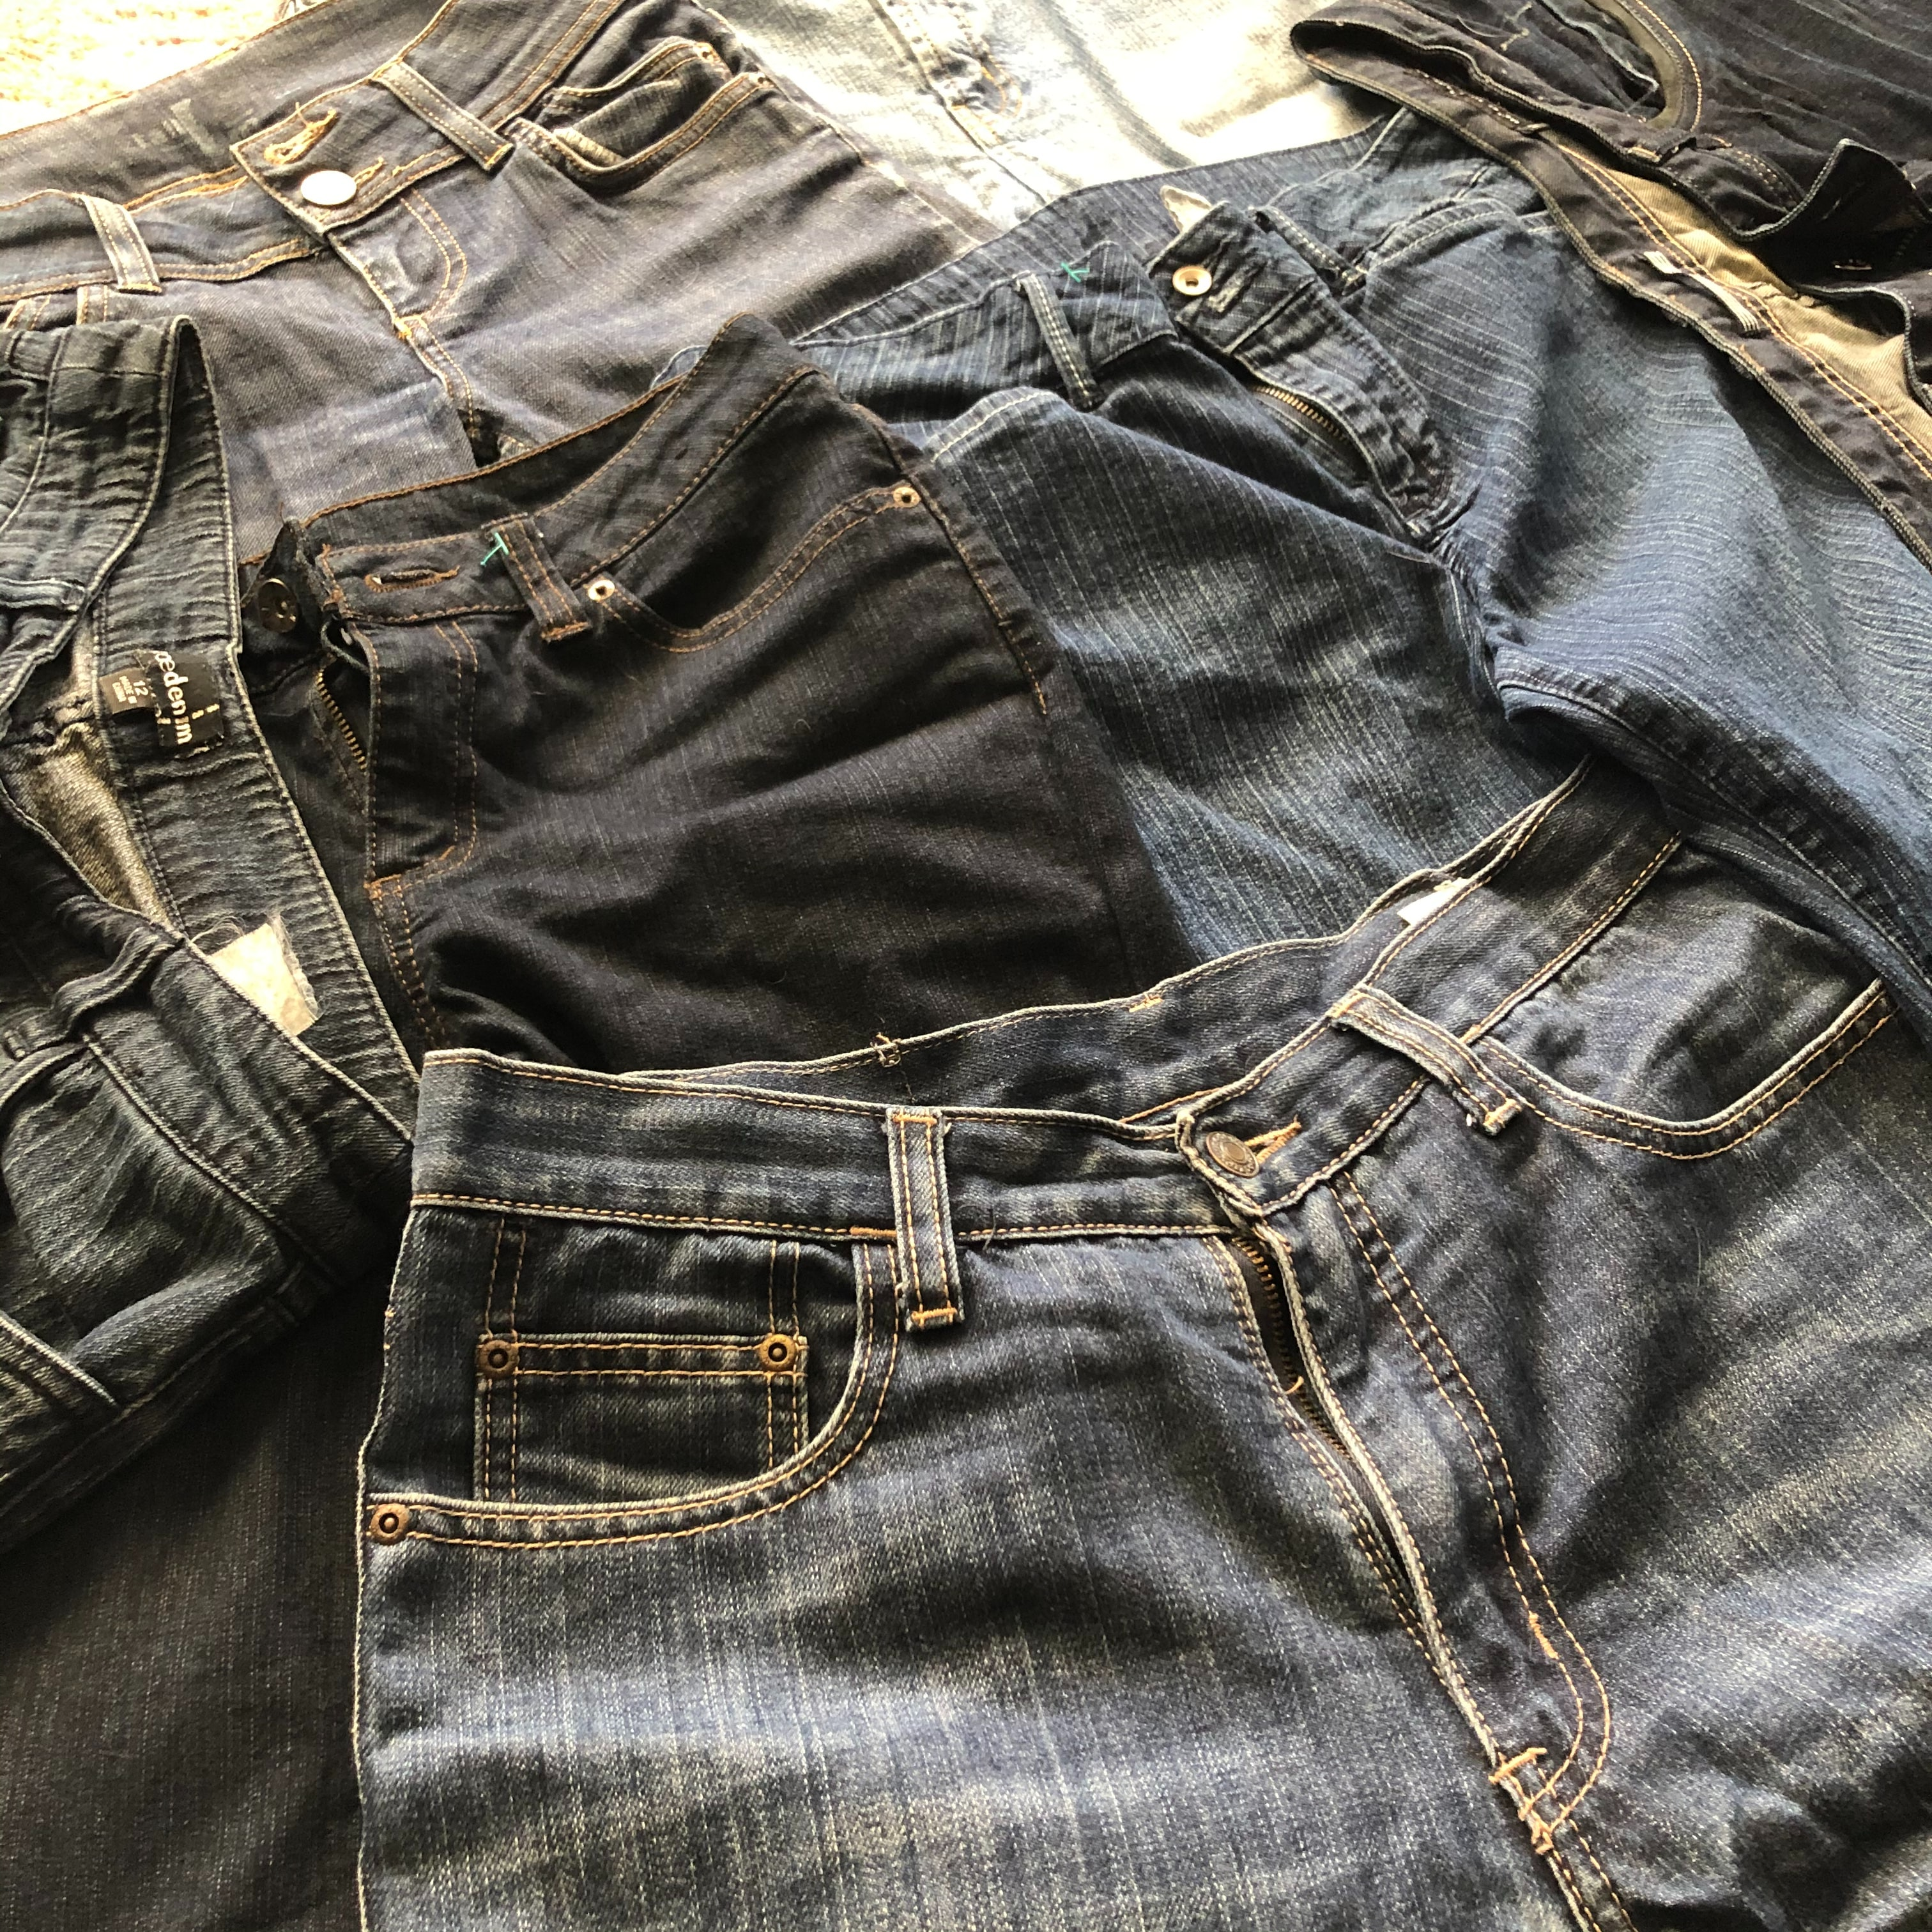 Jeans are useful to track weight loss.